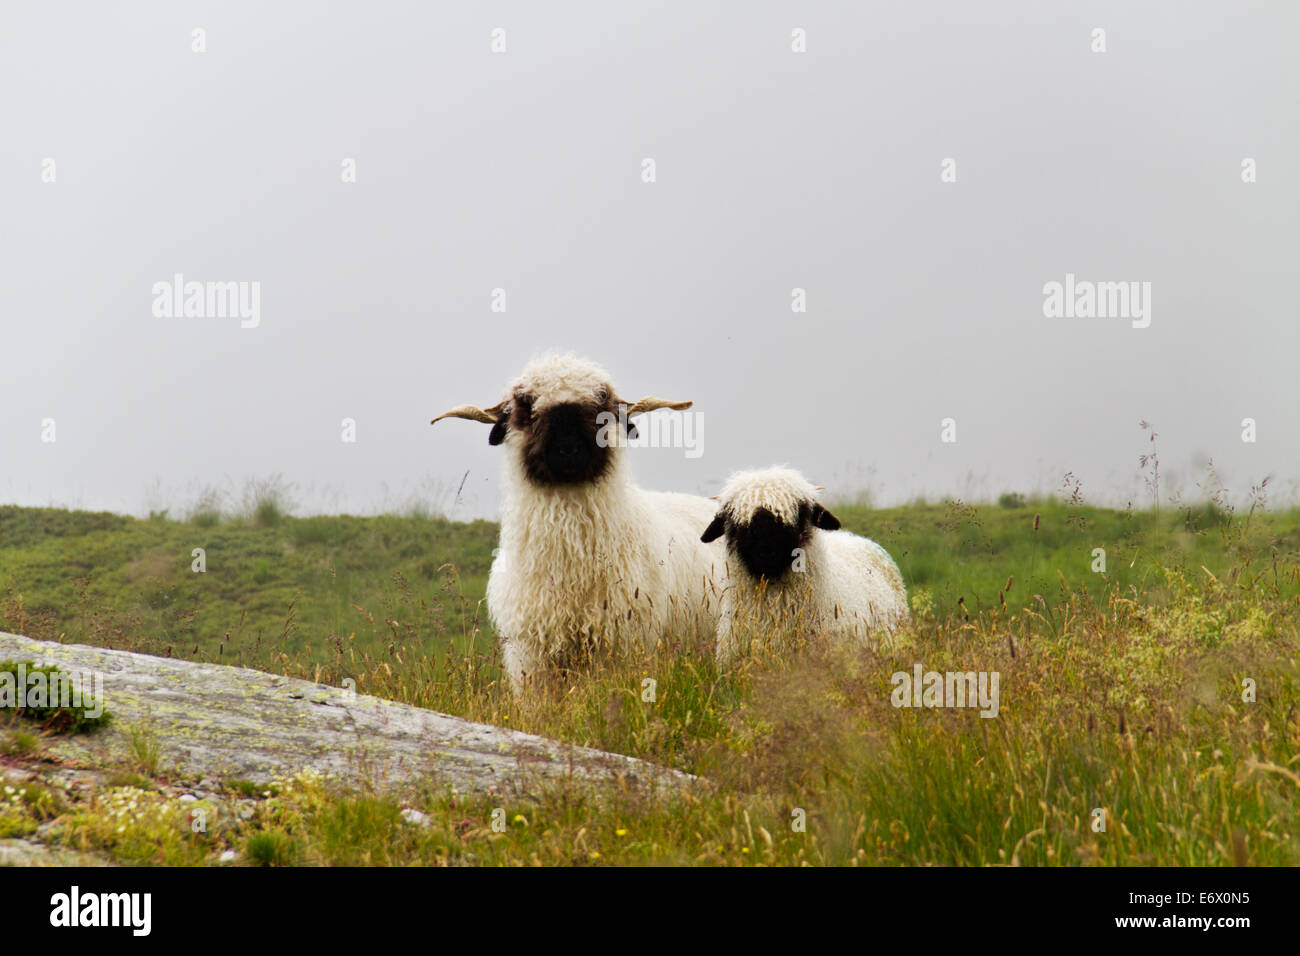 Valais Blacknose sheep, ewe with lamb, in a misty landscape - Stock Image